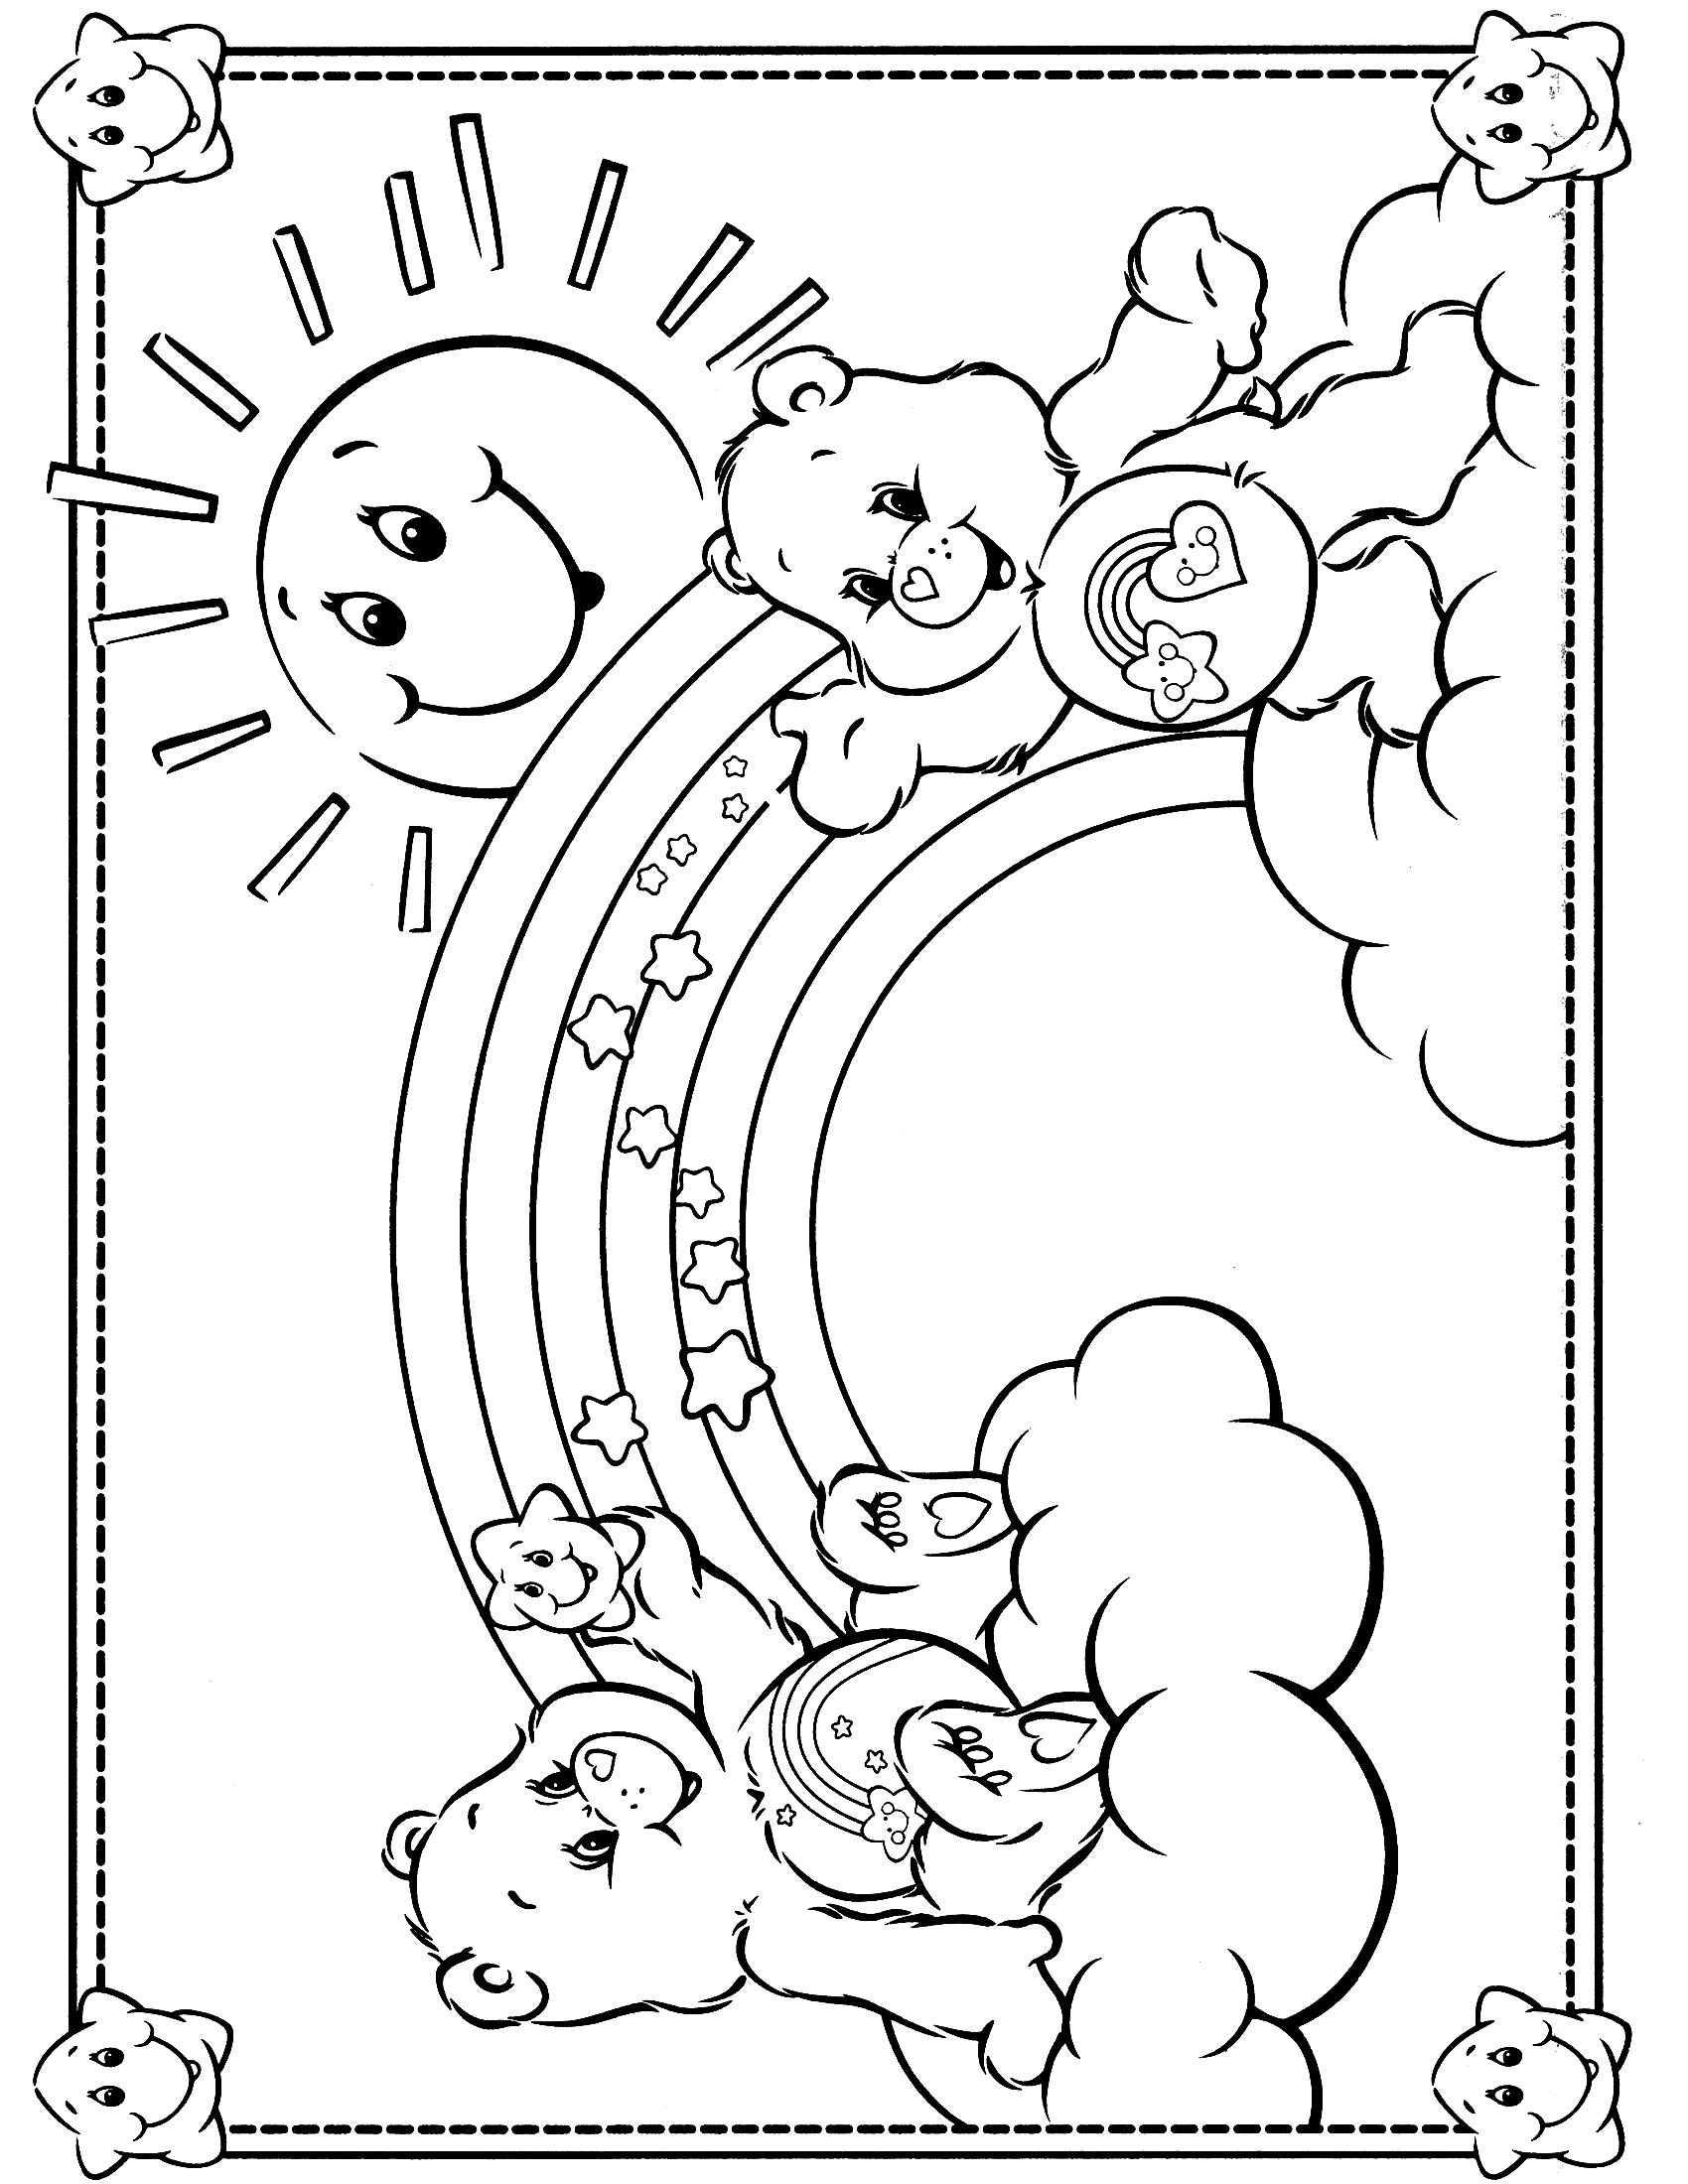 Care Bears Coloring Page Spring Coloring Pages Bear